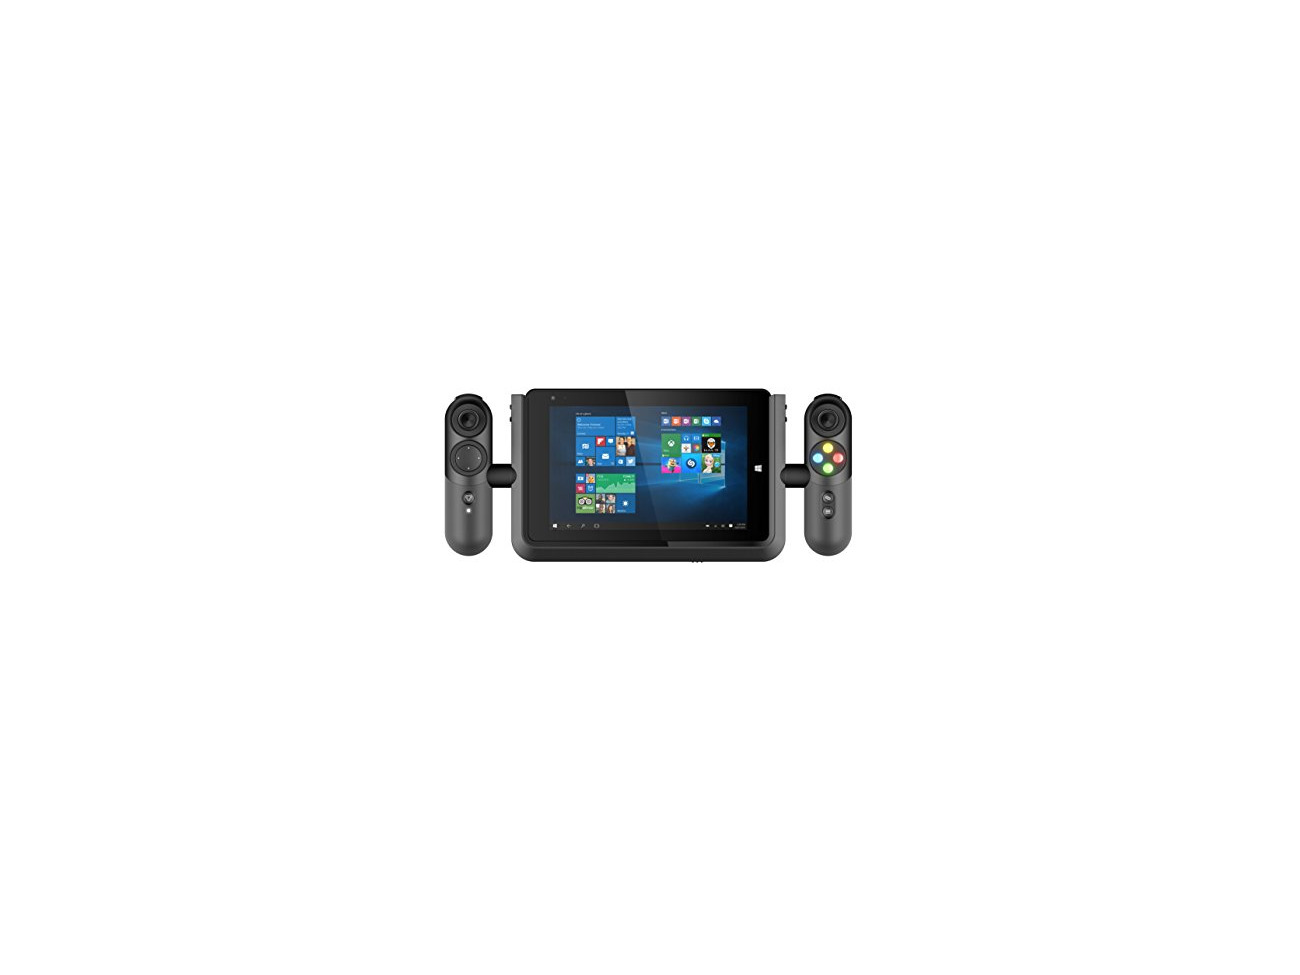 Buy Linx Vision 8 inch Tablet with Xbox Controller - Black